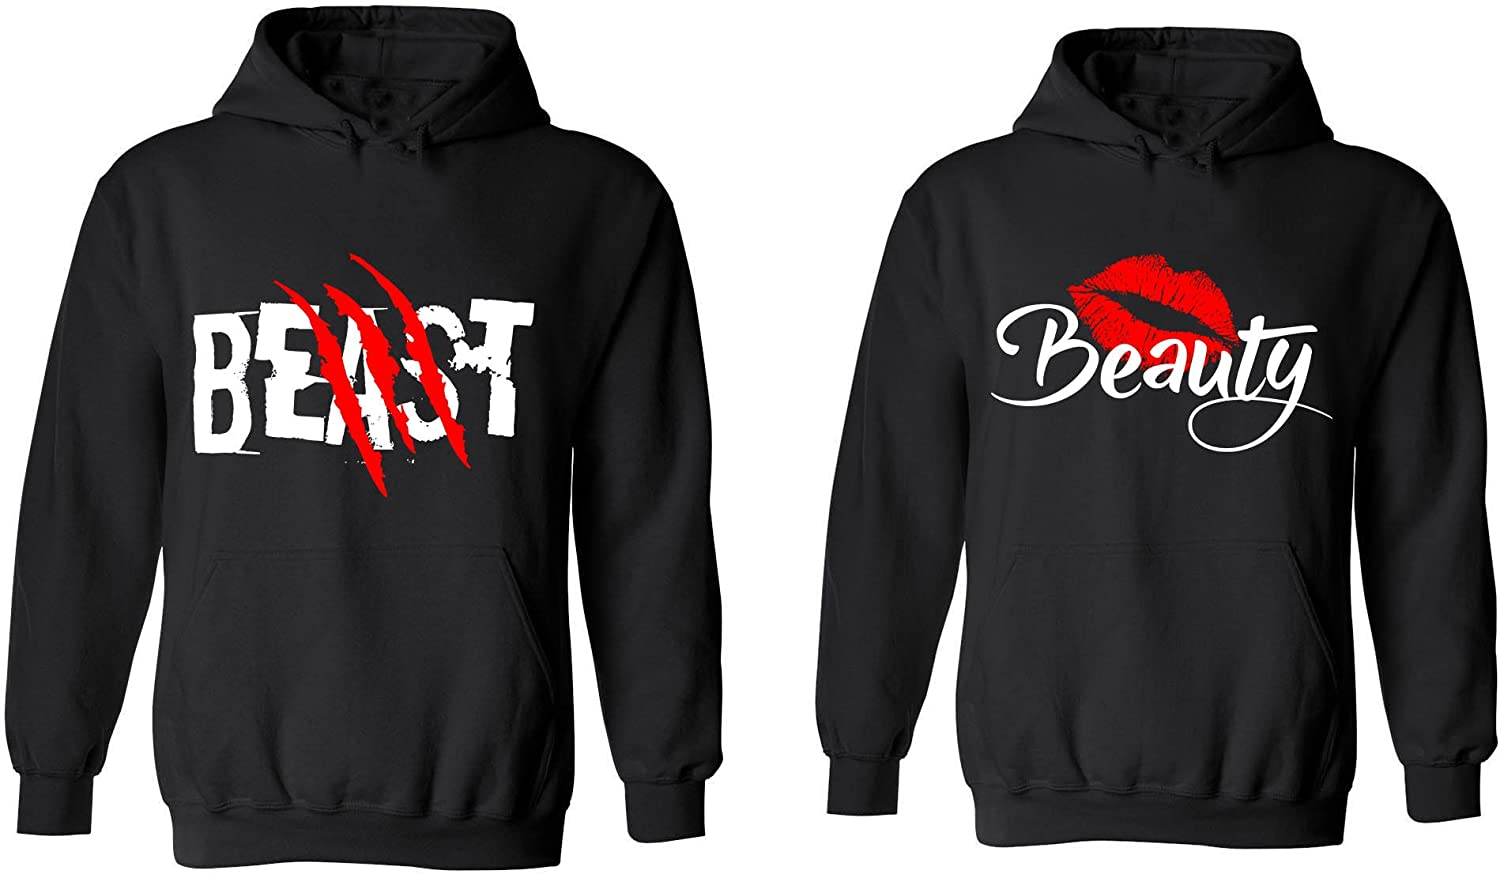 Amazon Com Beast Beauty Matching Couple Hoodies His And Her Sweaters Clothing